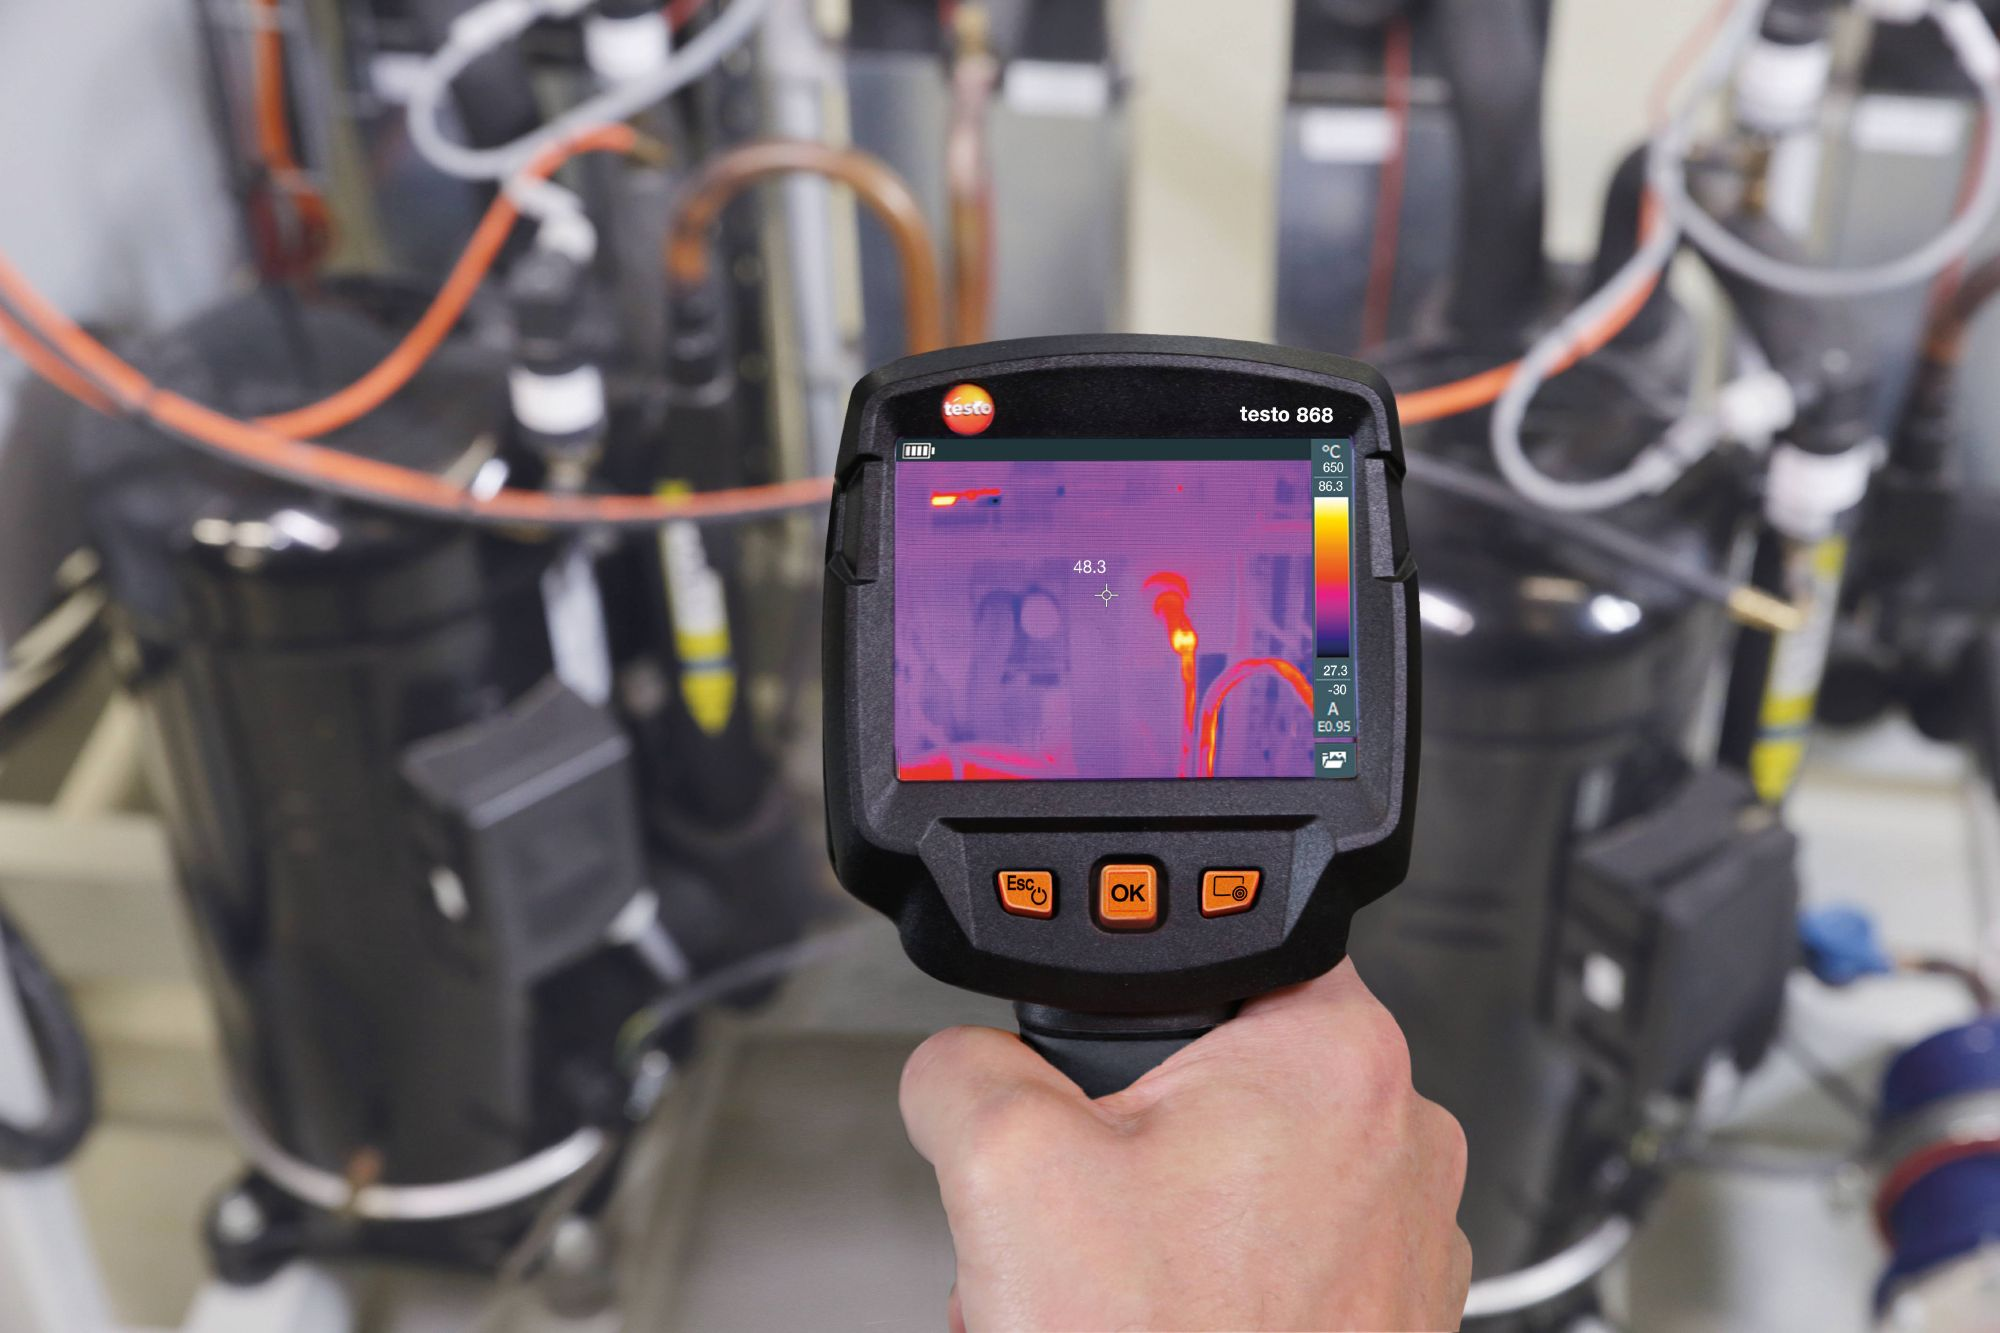 Testo's thermal imaging tools allows Tru-Steam technicians to detect thermal leaks and other boiler issues.